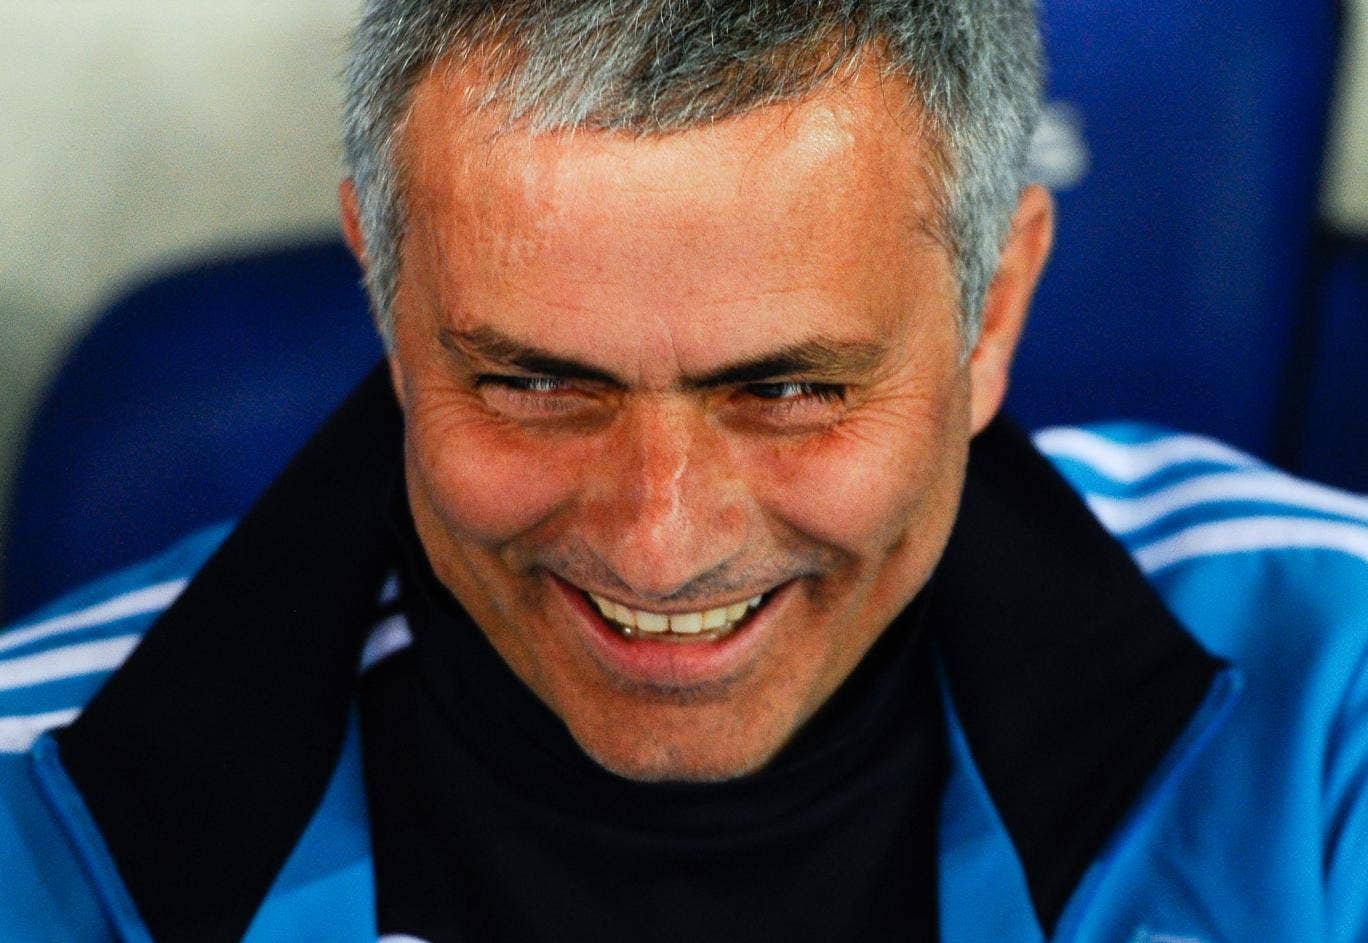 Jose Mourinho has had his fair share of memorable moments while managing Real Madrid